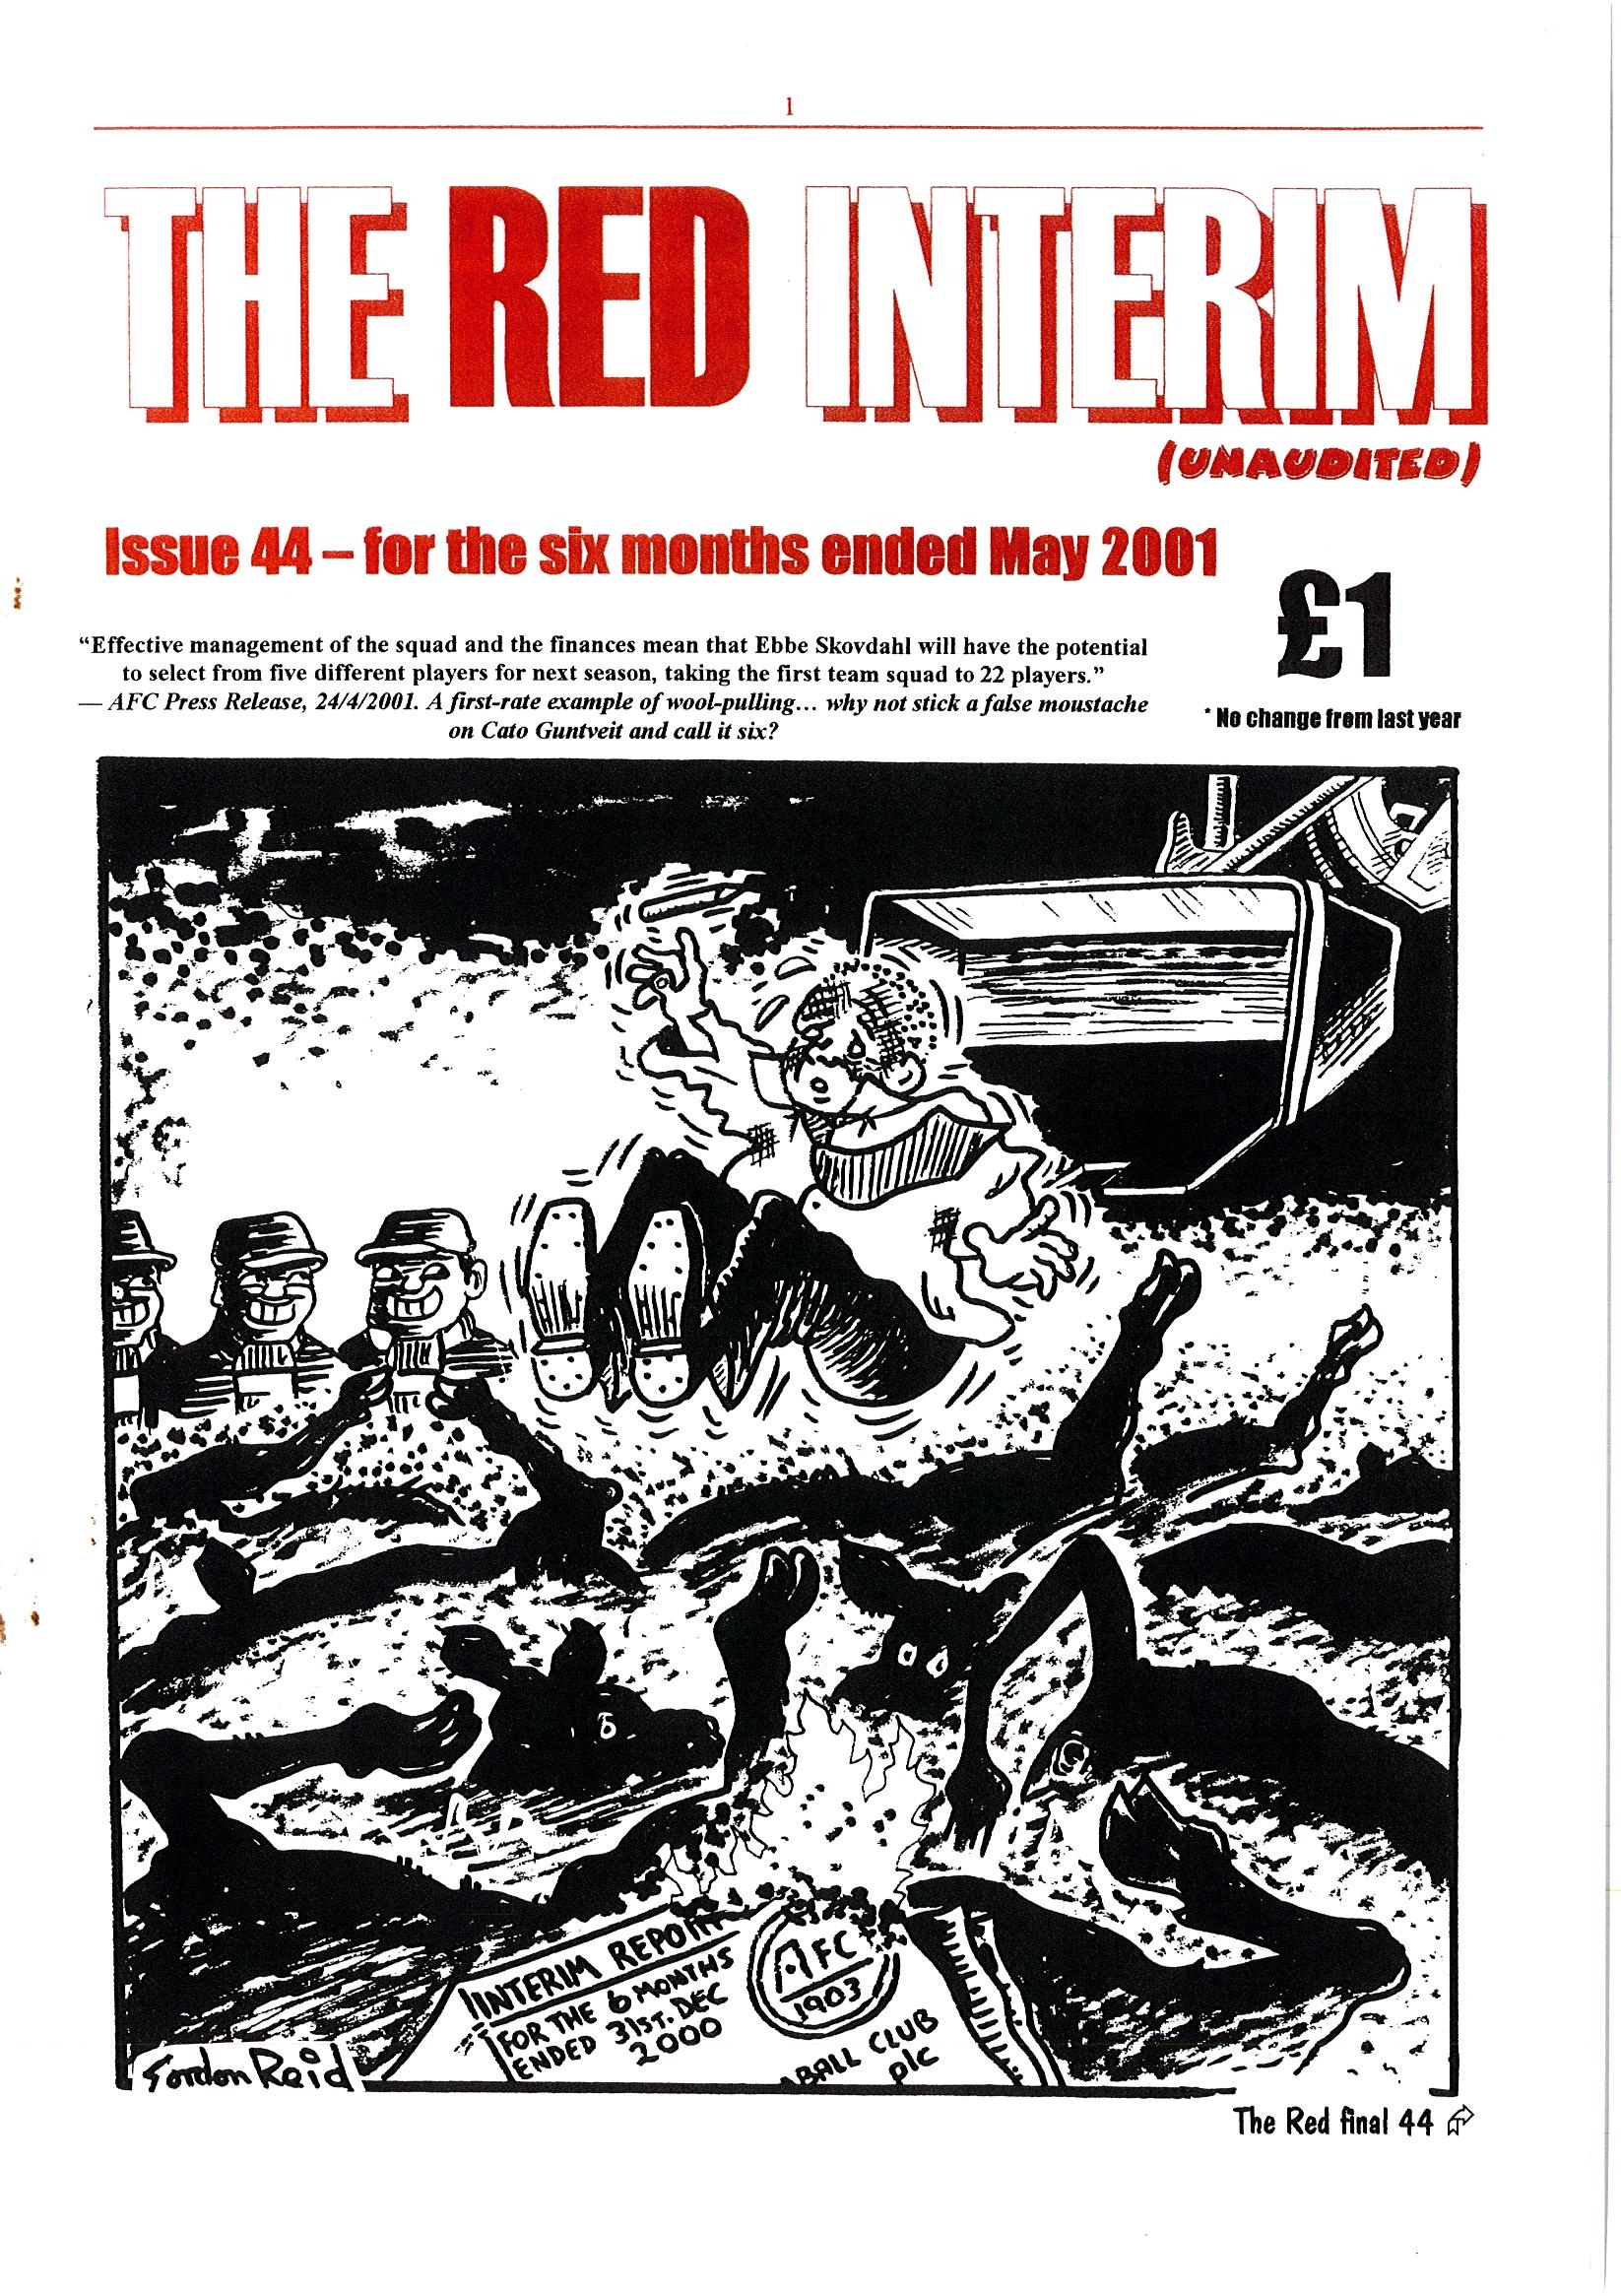 The Red Final, Issue 50